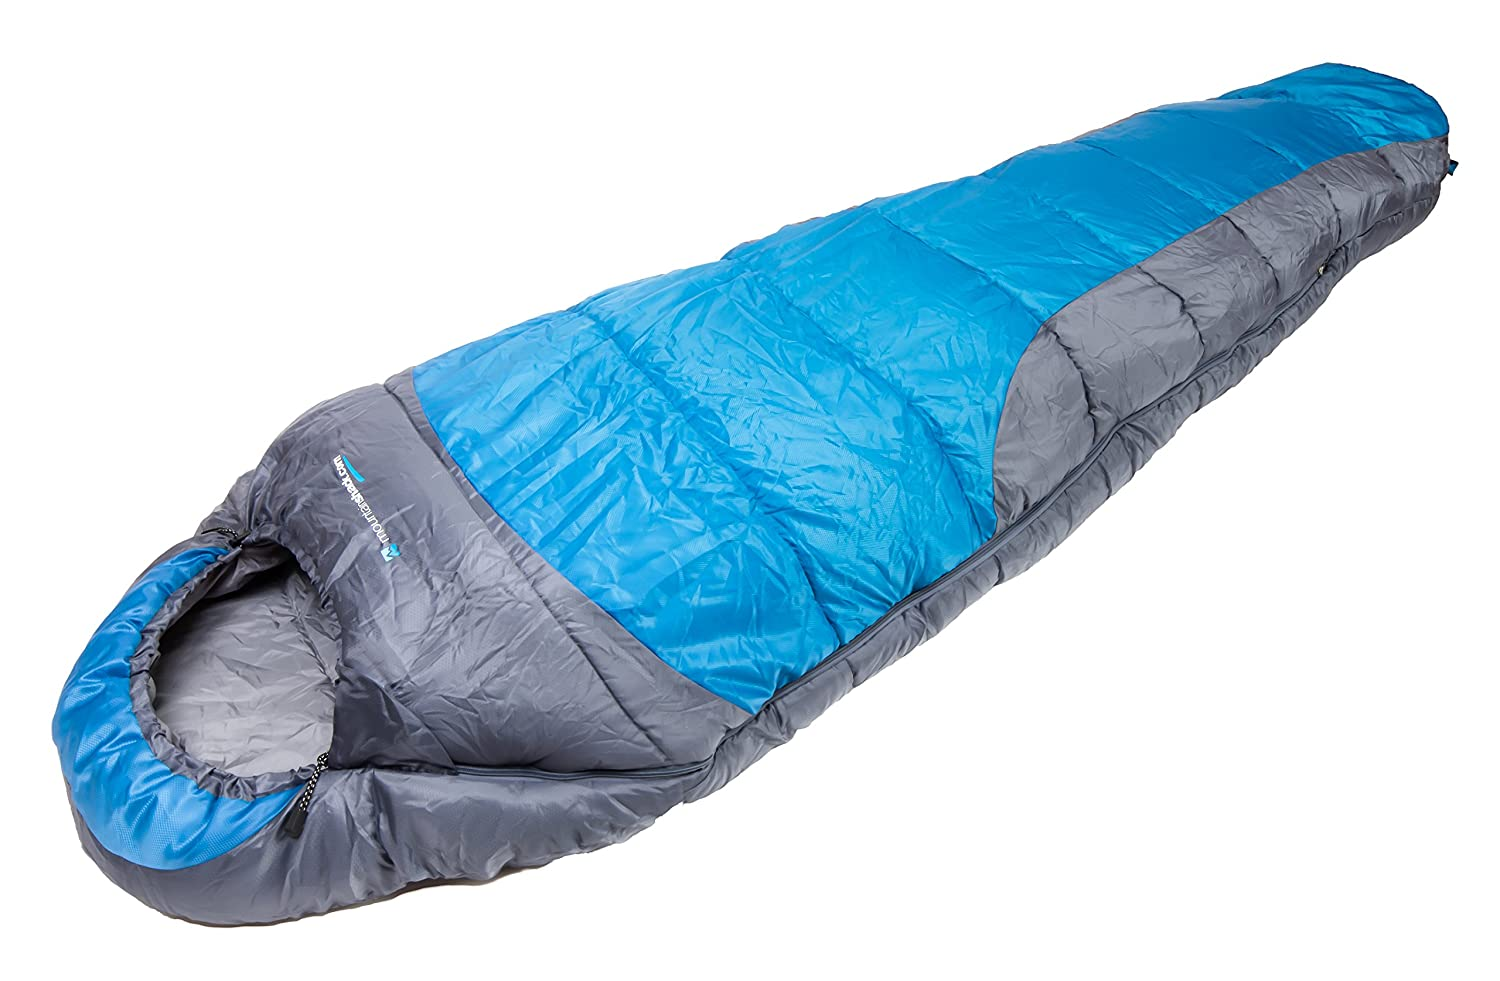 Mummy Sleeping Bag Windproof Water Resistant Warm To 0C Compresses Fully For Compact Easy Carry Soft Lining Smooth No Snag Zipper